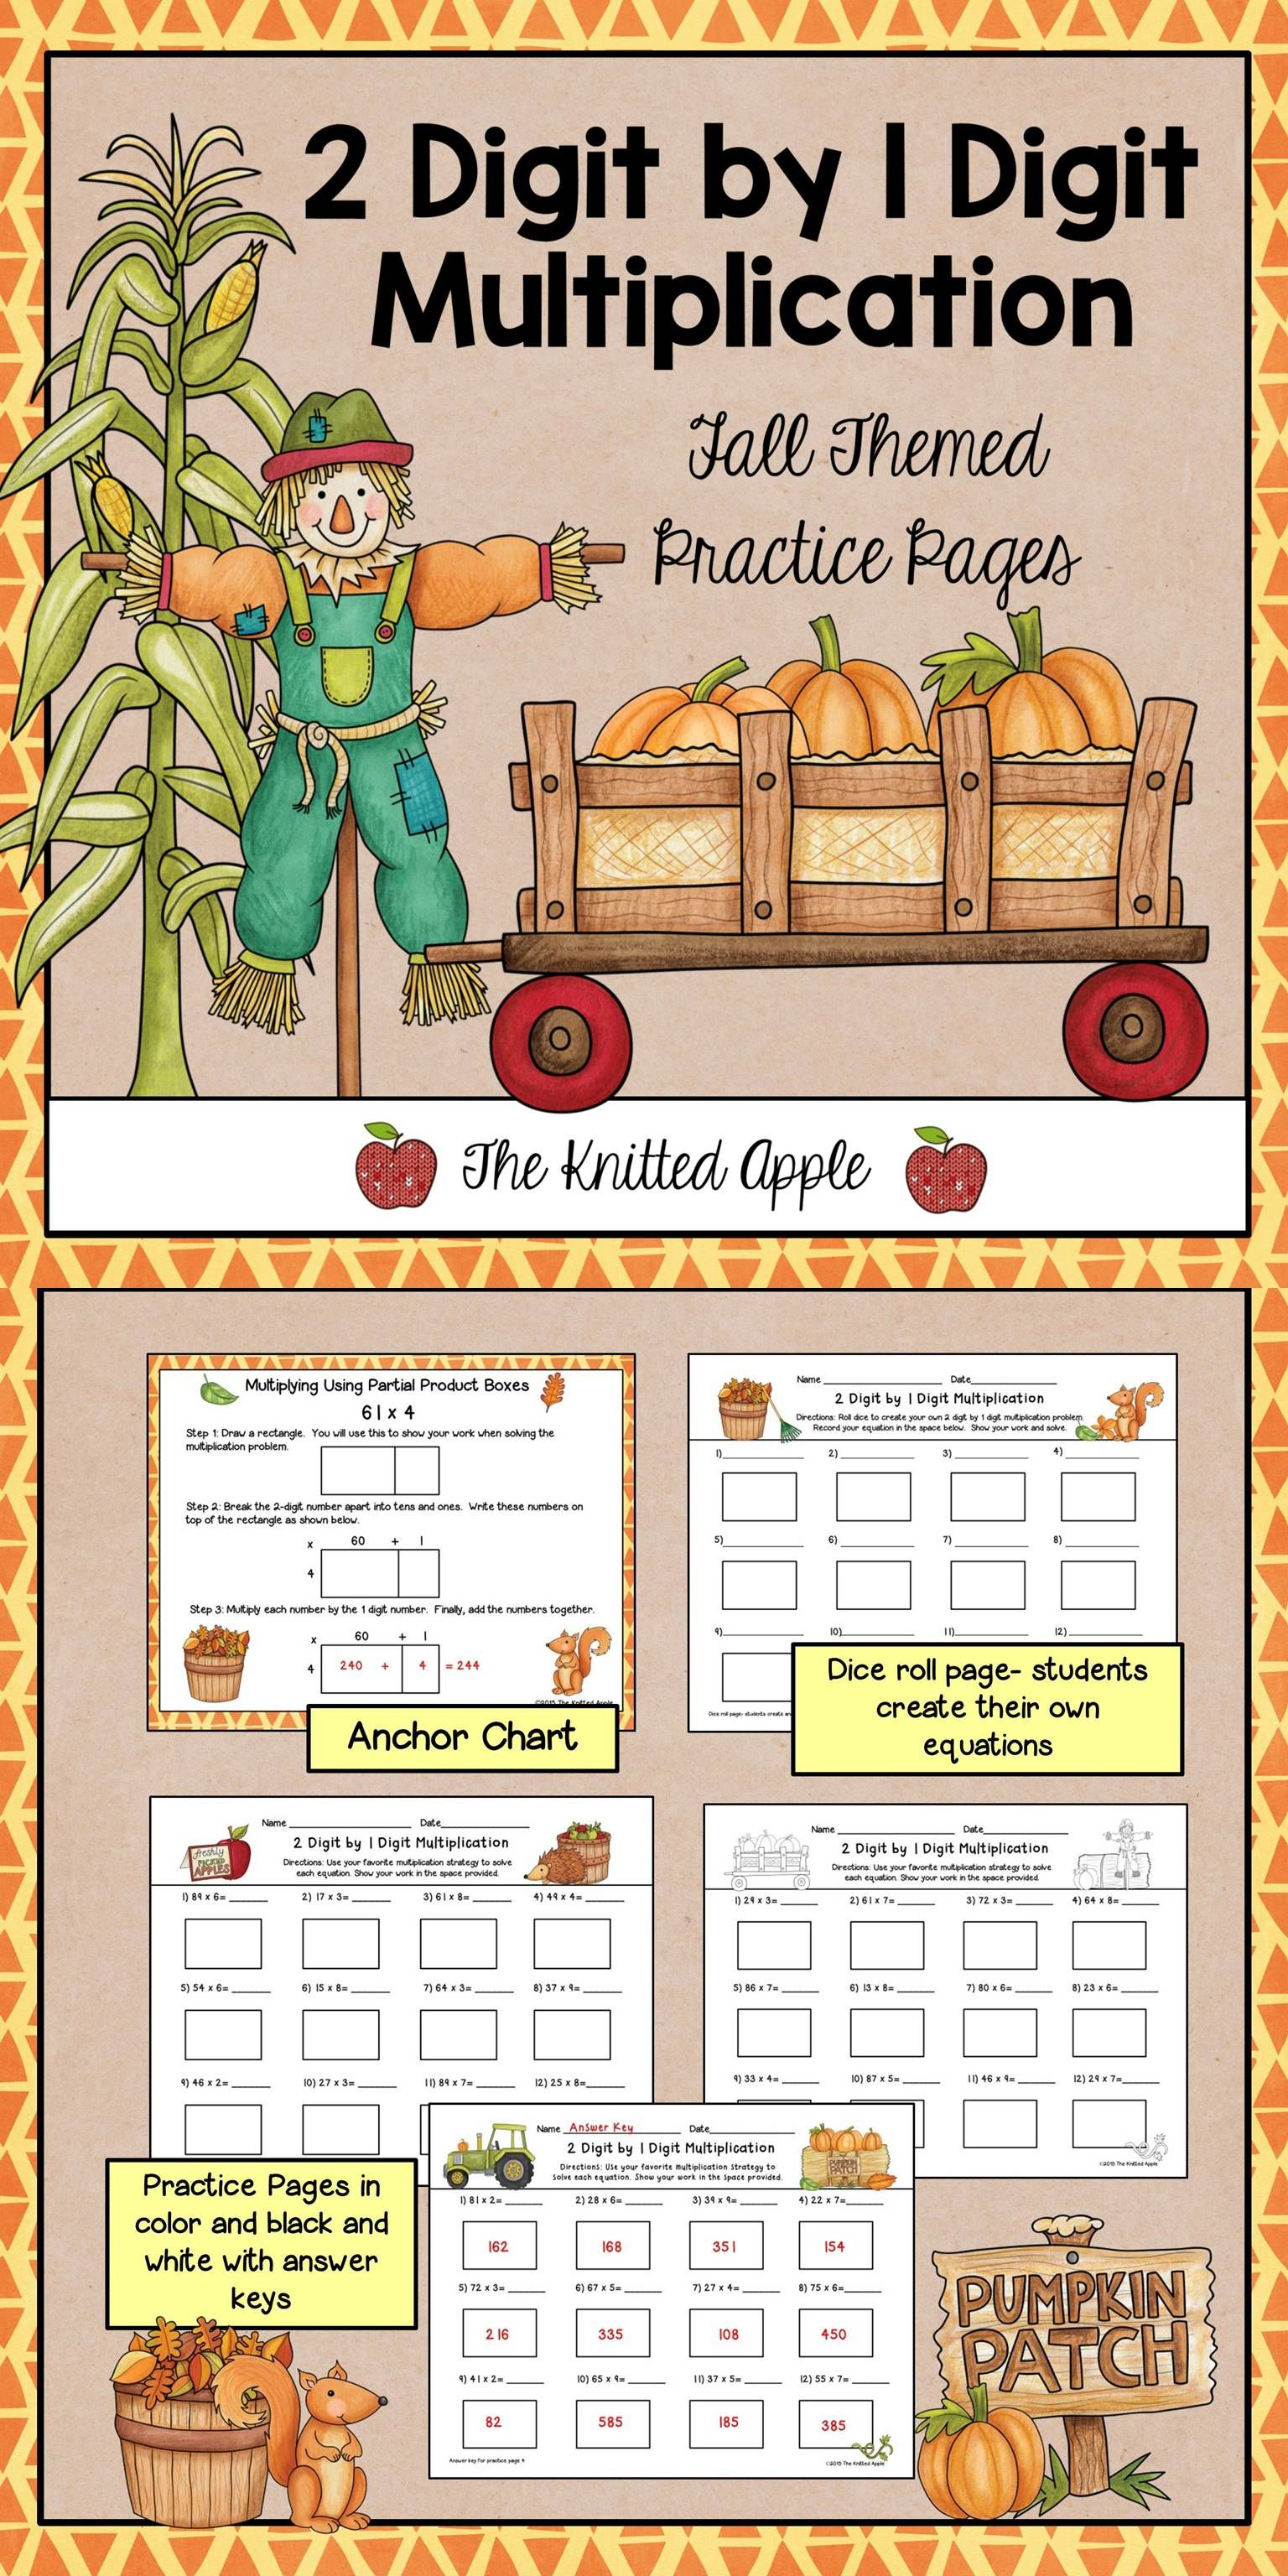 2 Digit By 1 Digit Multiplication Using Partial Products Fall Theme